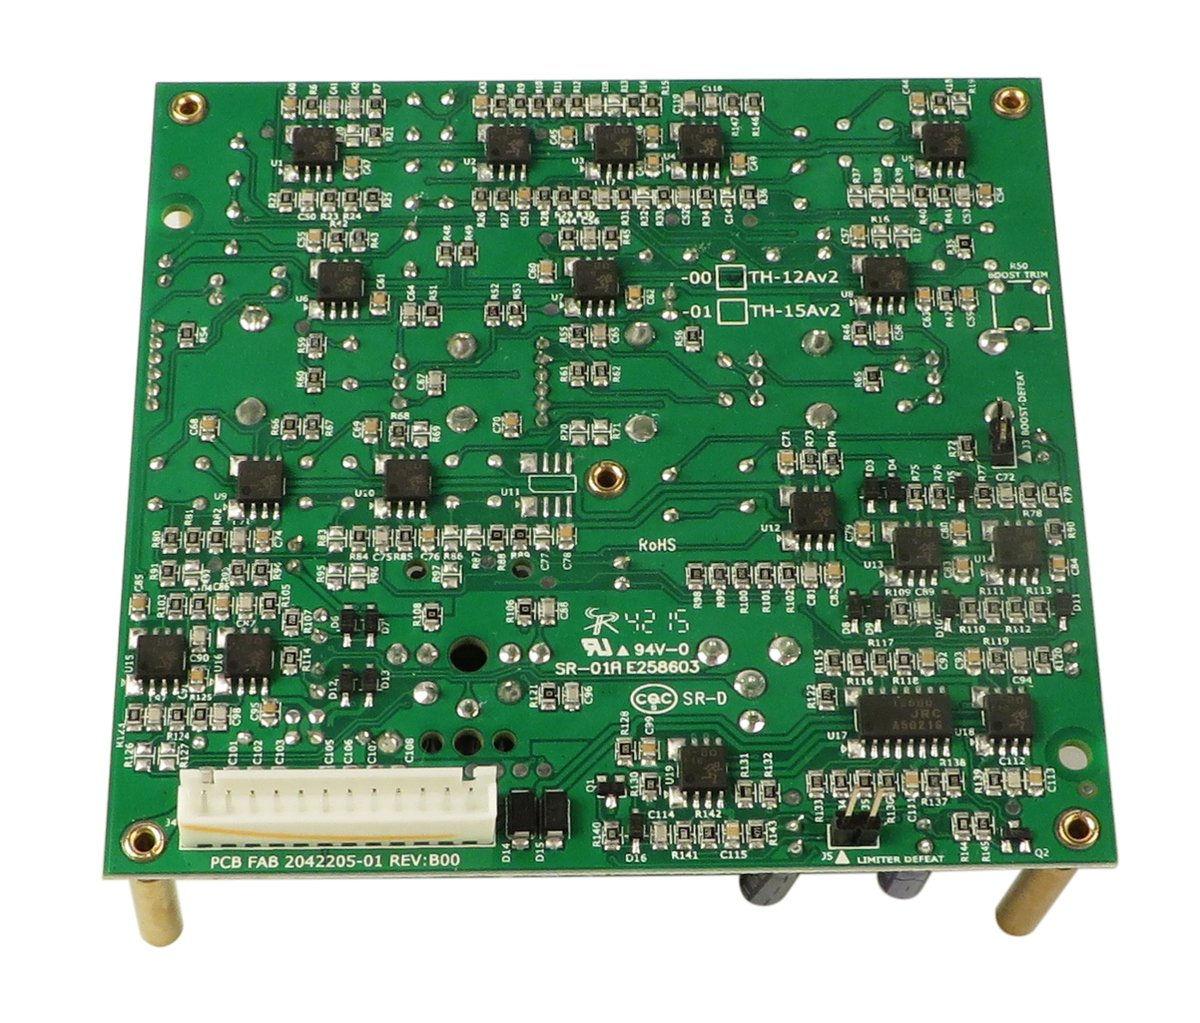 ASP PCB Assembly for TH-12aV2